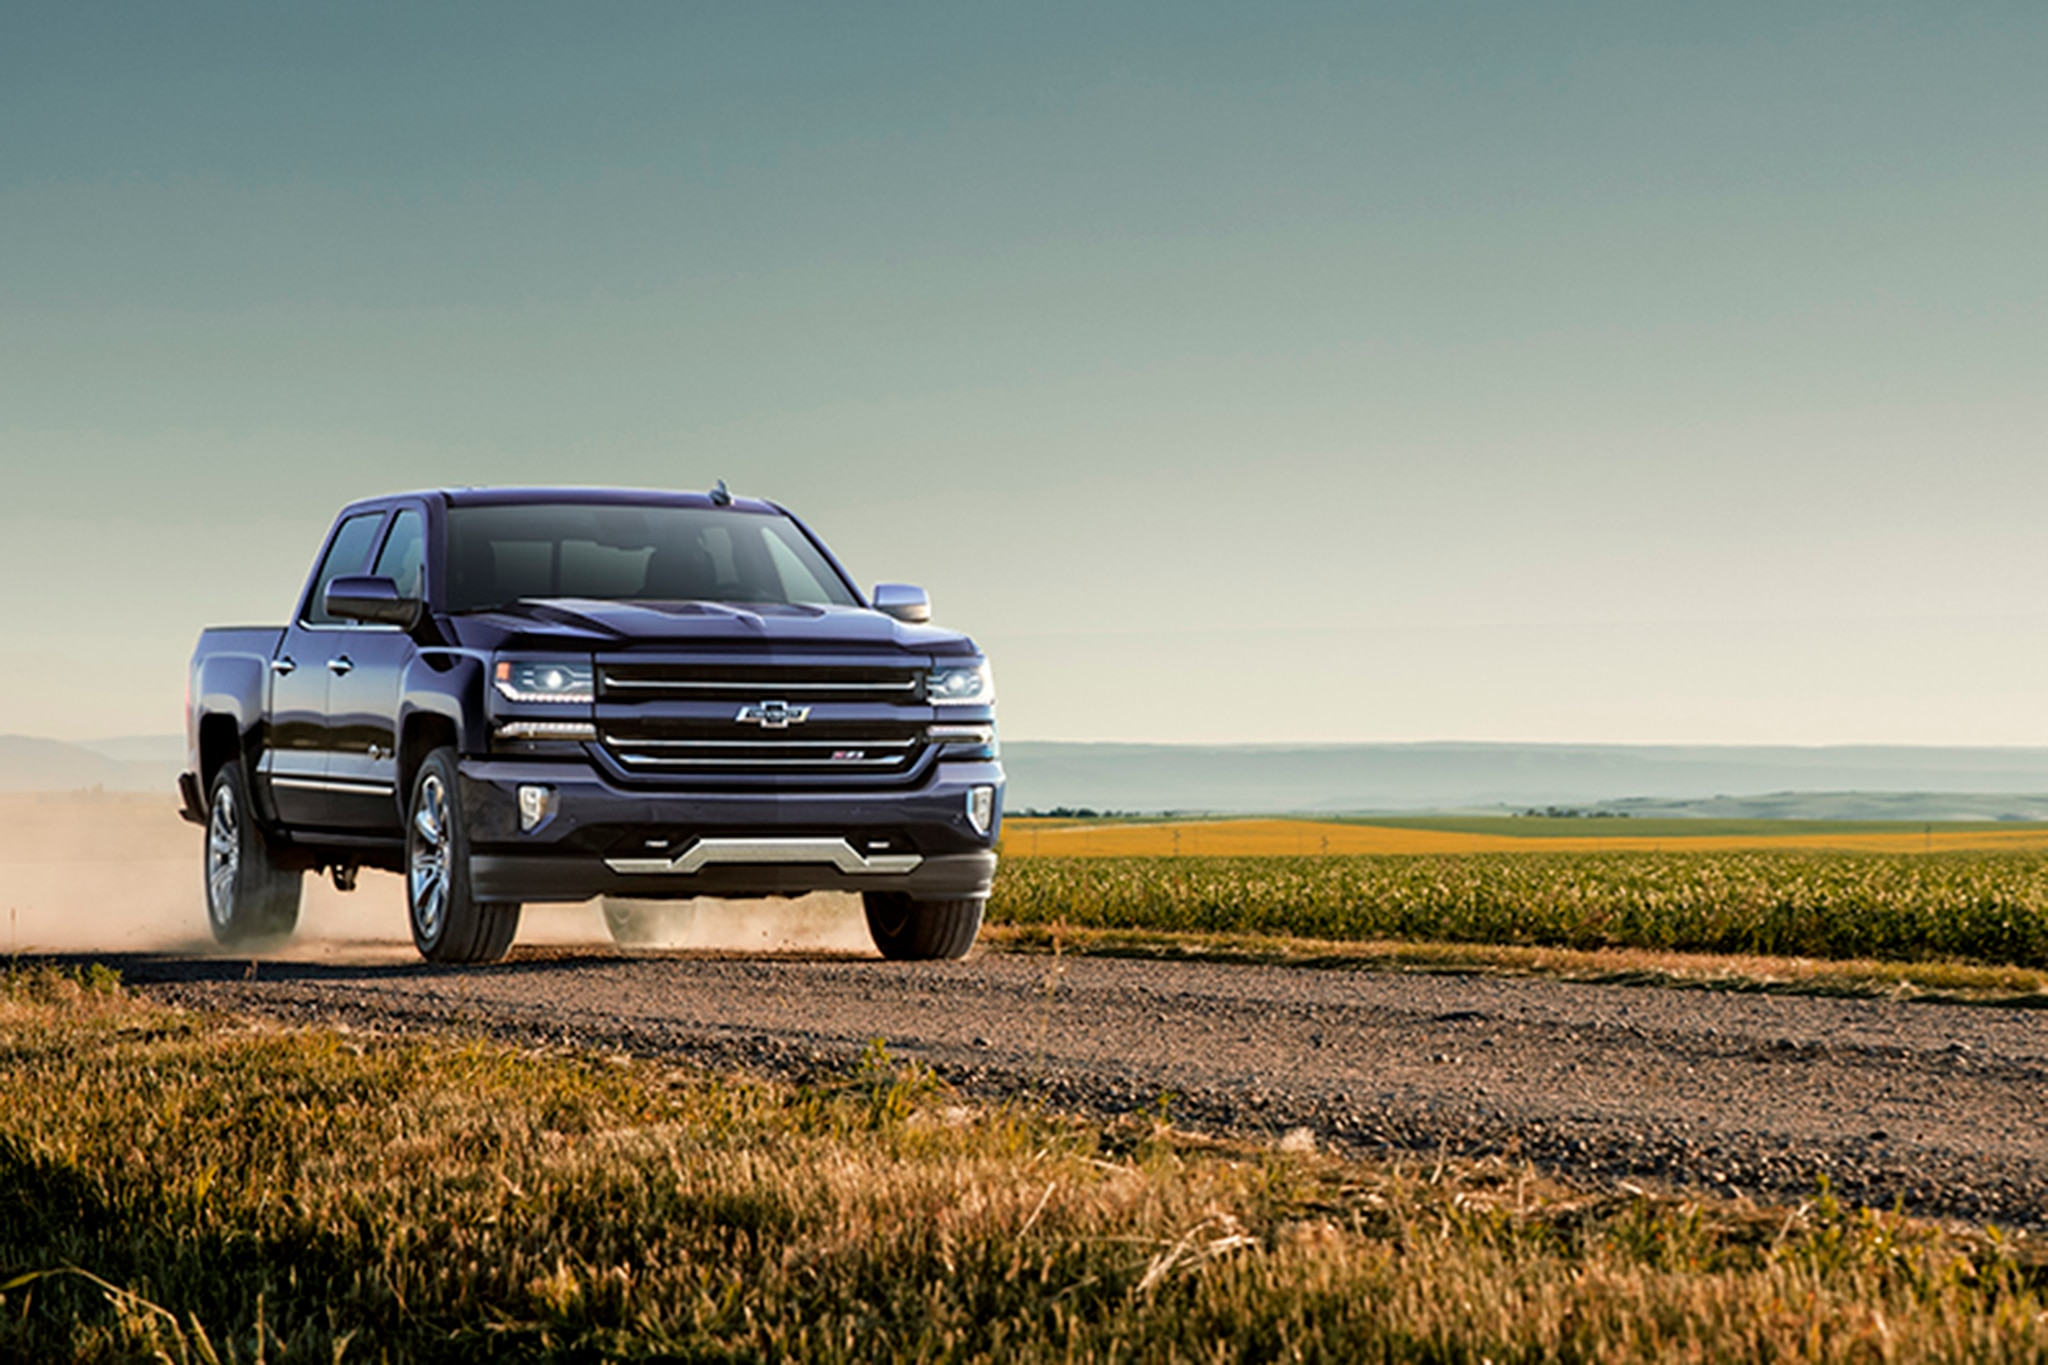 Chevrolet Trucks Celebrates Centennial with 2018 Silverado and